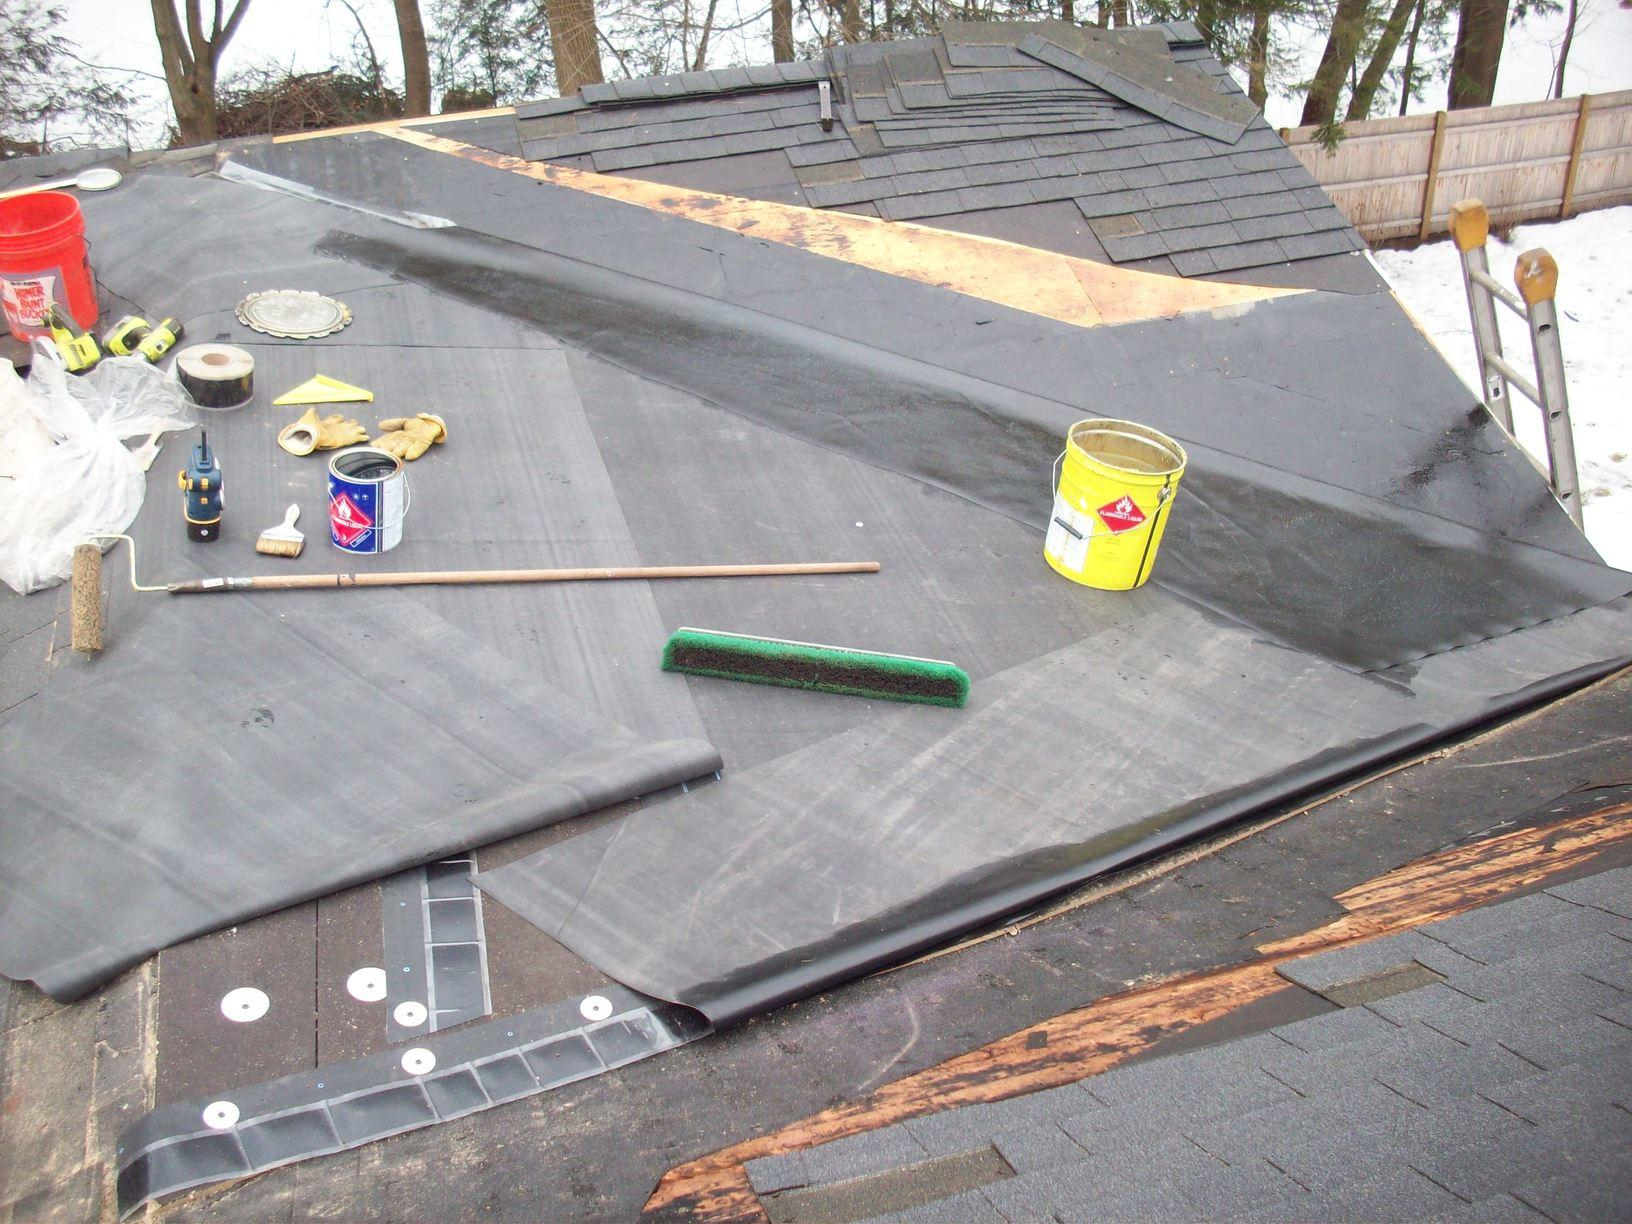 Newton Needham Wellesley Ma Flat Roofing Company Greater Boston Flat Roof Repair And Replacement